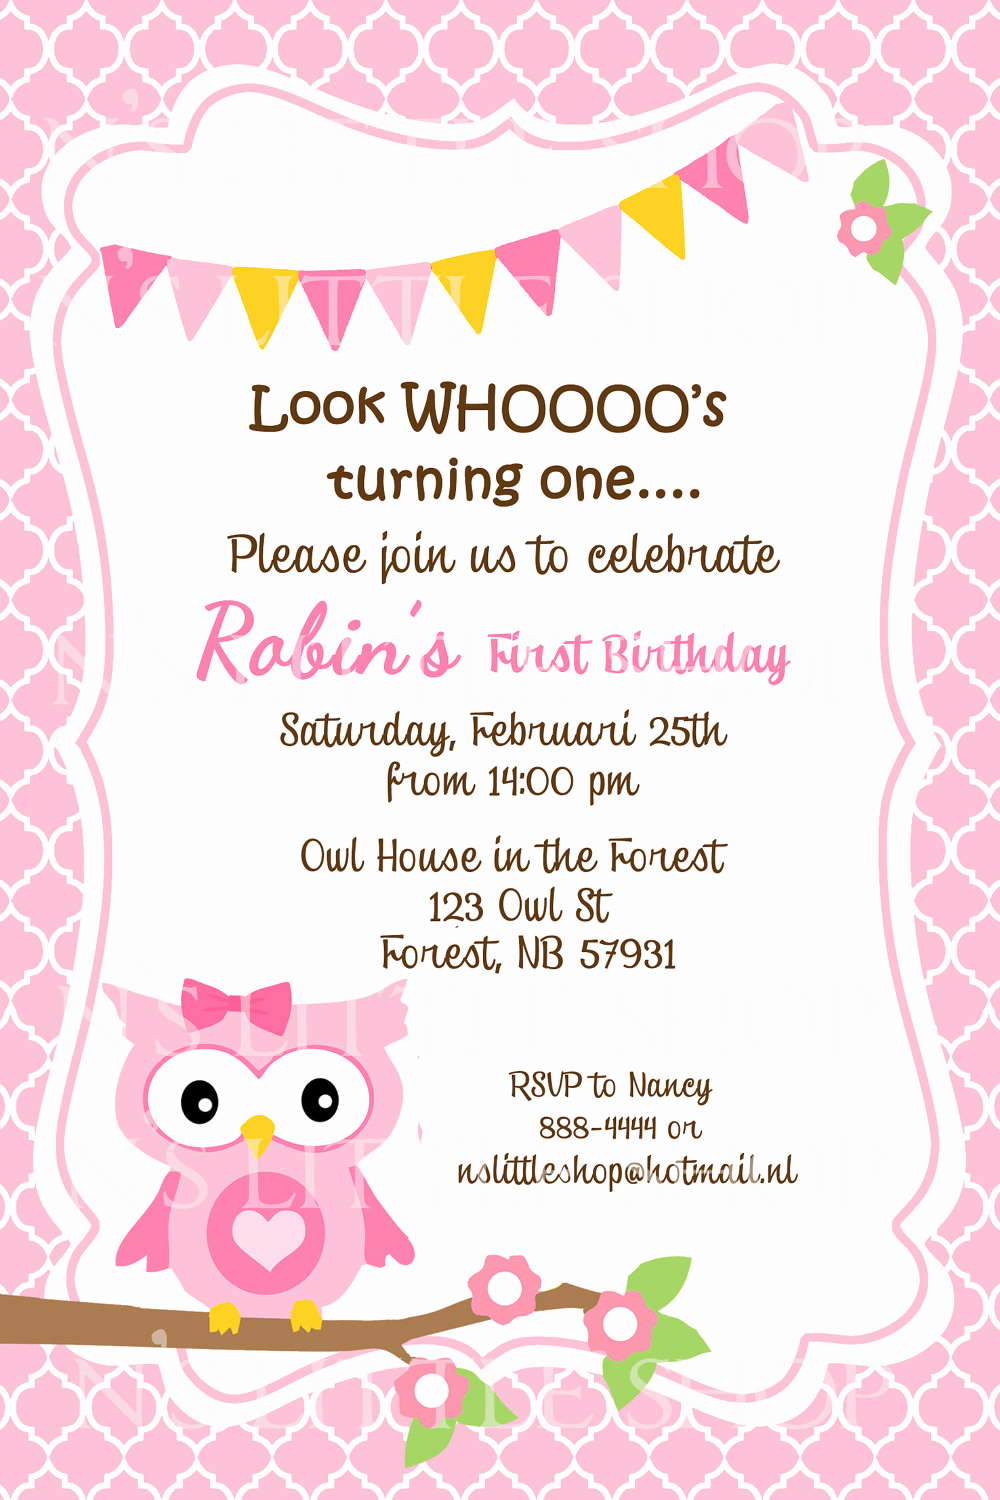 Invitation Card for Birthday Awesome Pink Owl Birthday Invitation Card Customize by Nslittleshop